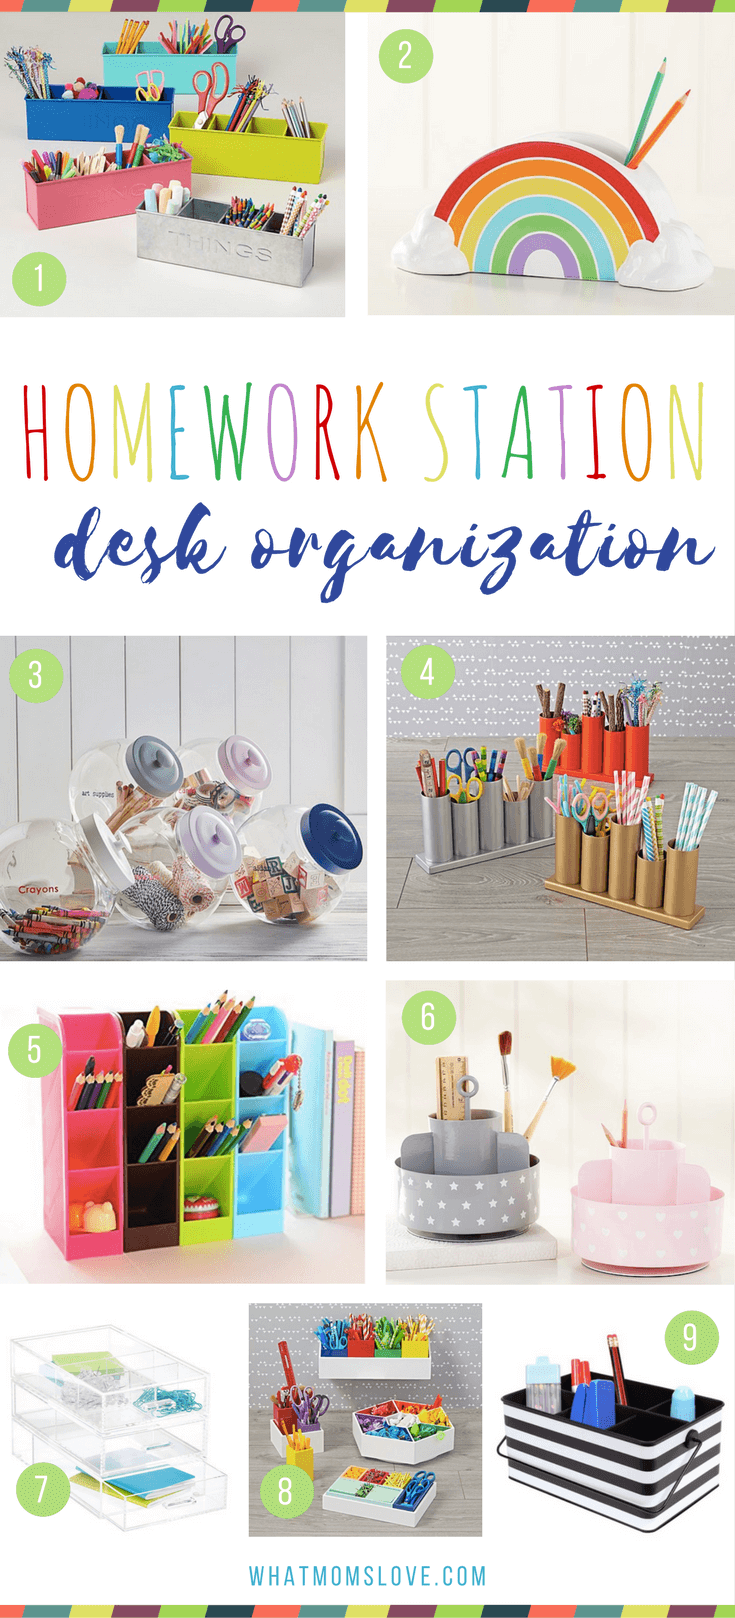 How to make a homework station for kids - desk organization for a study space